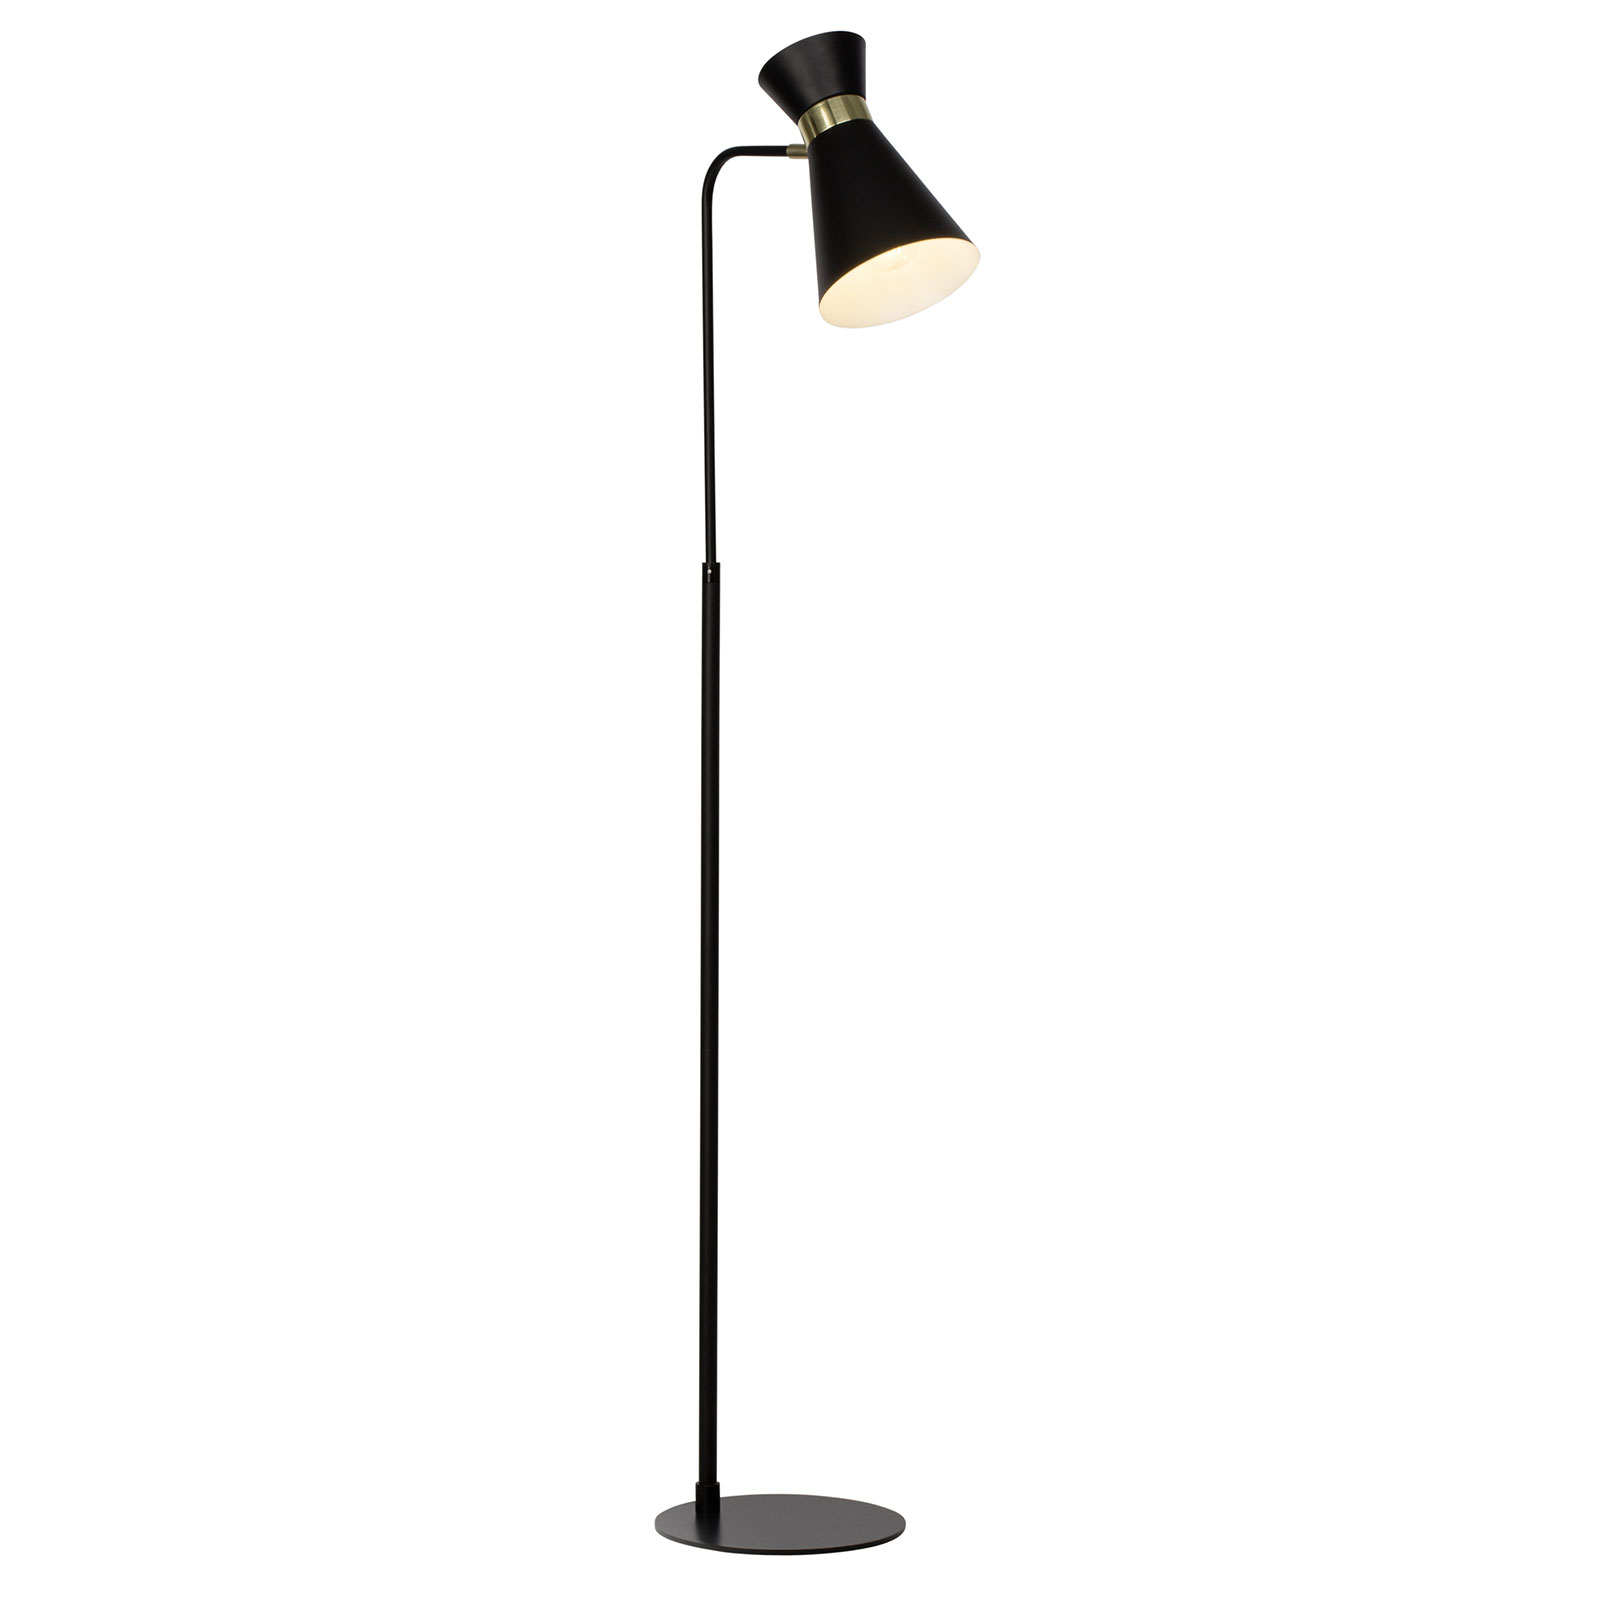 Lampadaire Goldy, orientable